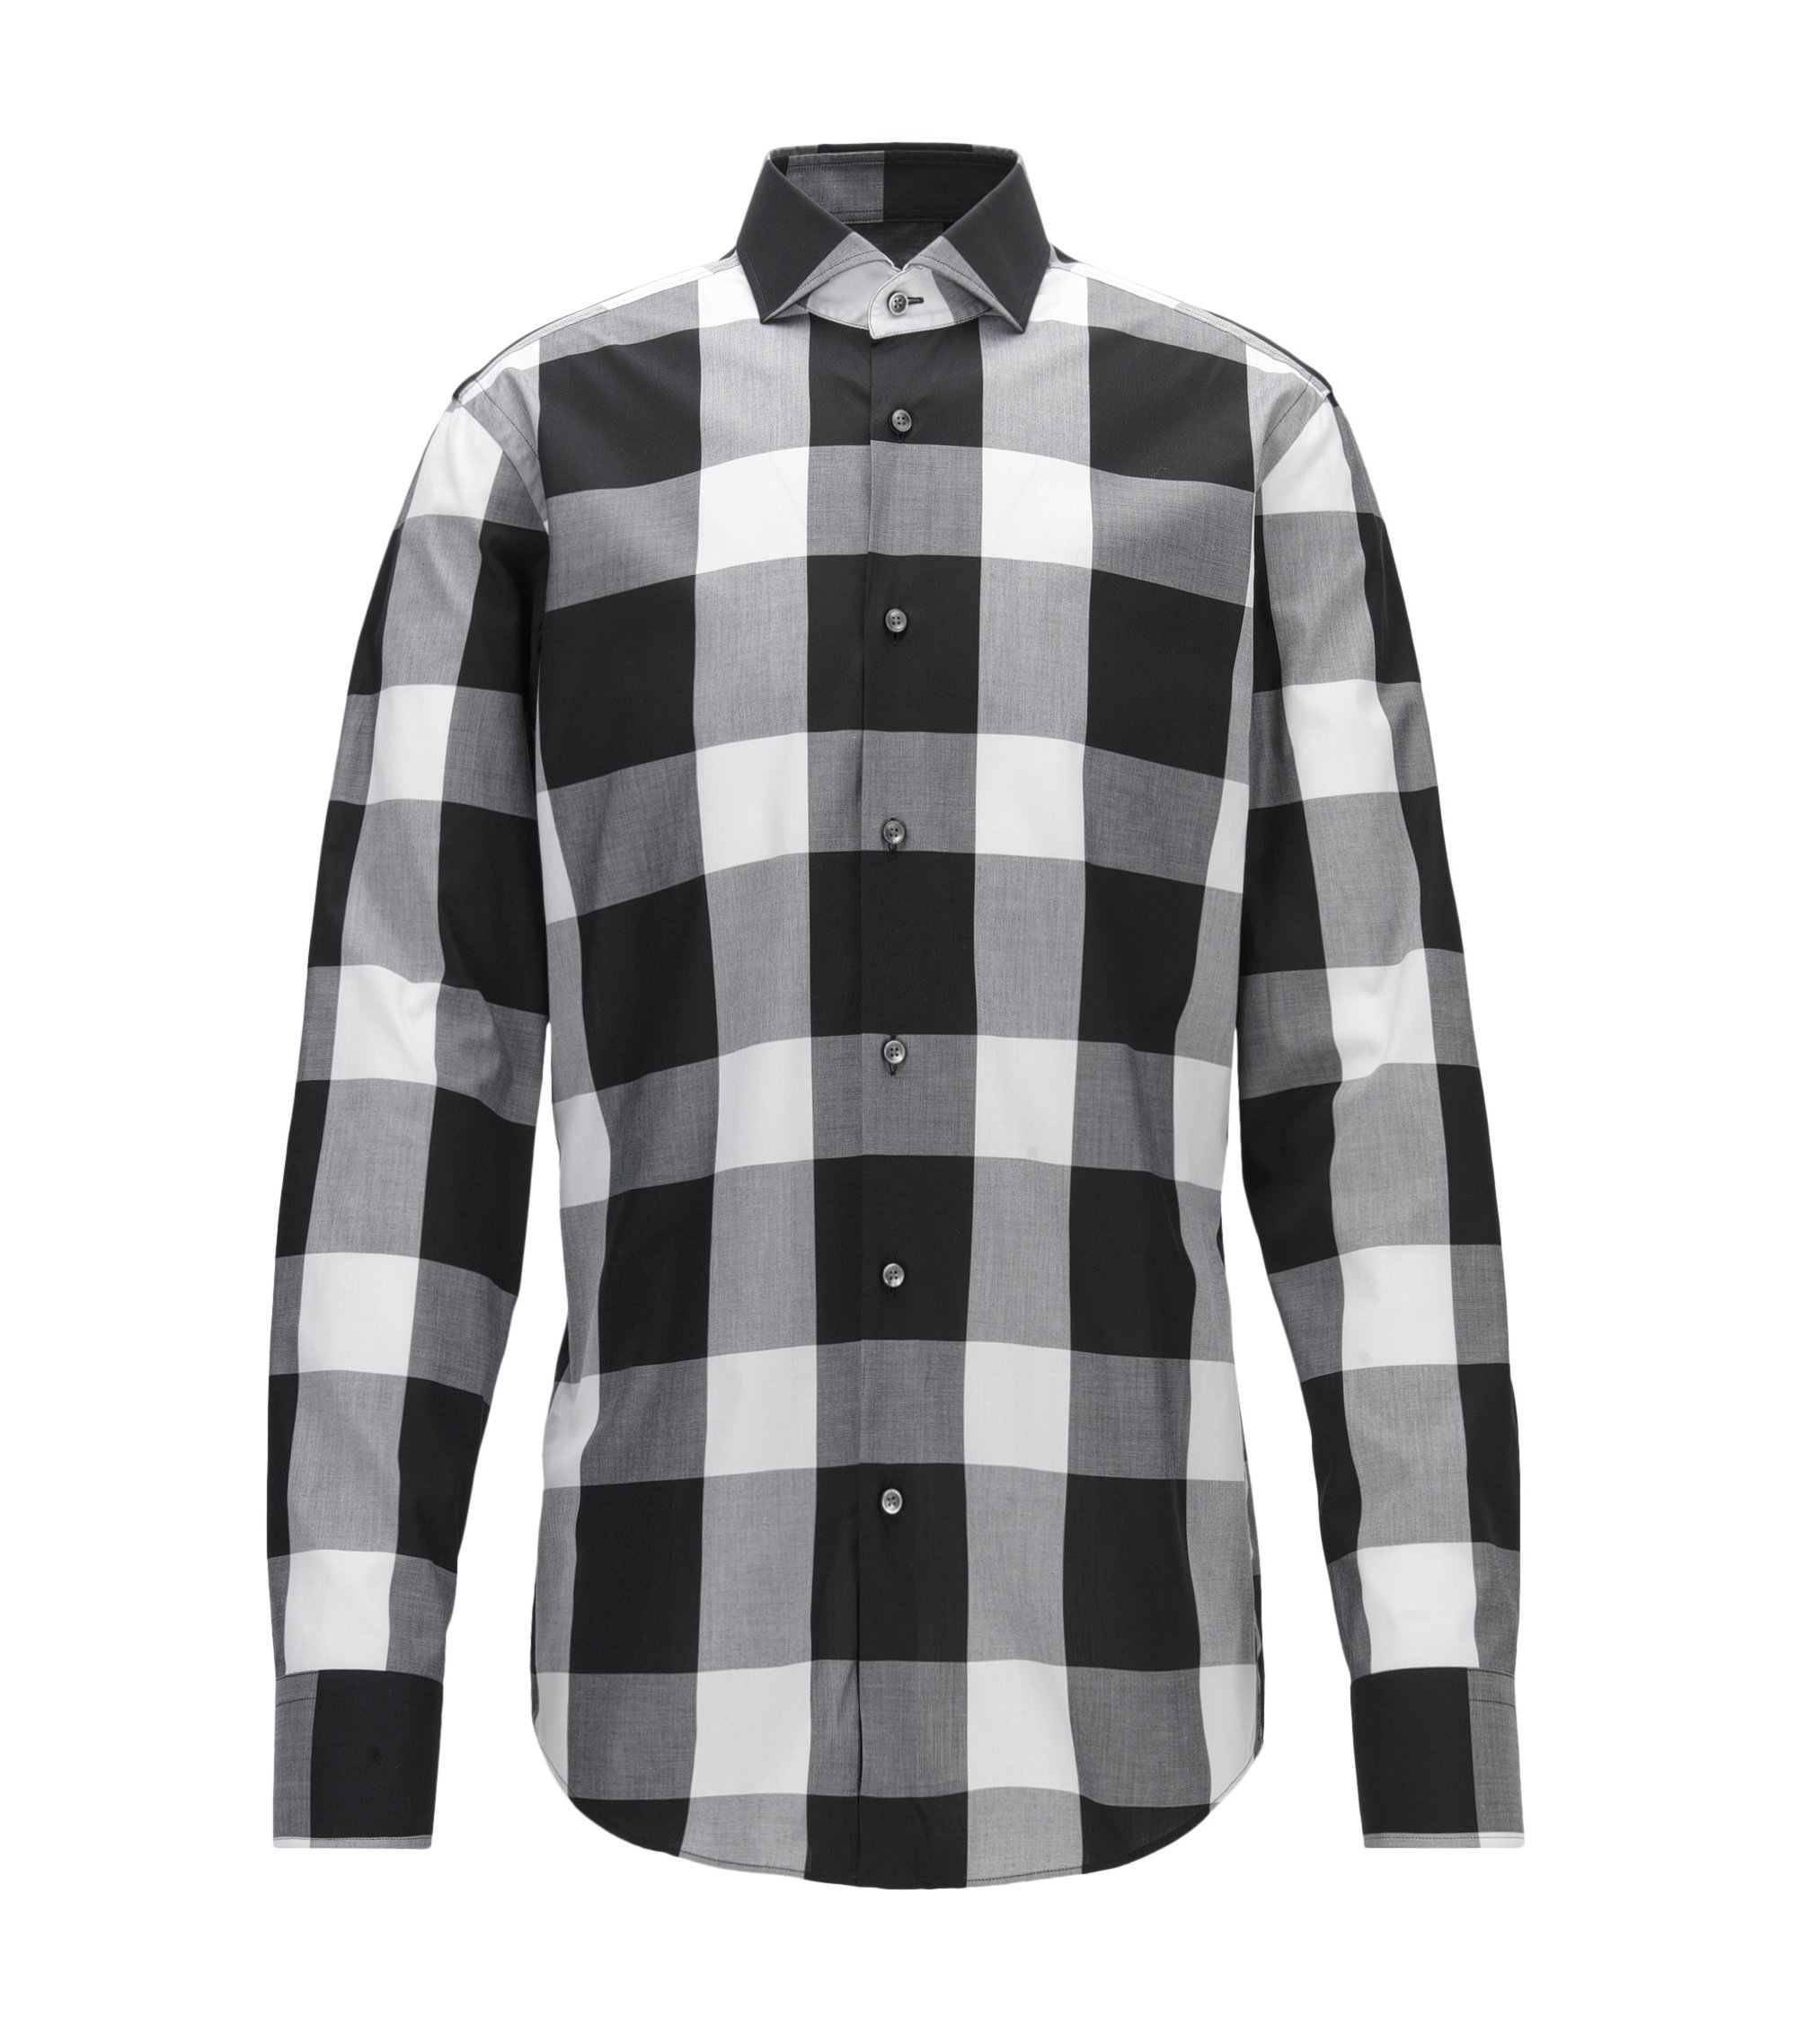 Buffalo Check Cotton Dress Shirt, Slim Fit | Jason, Black